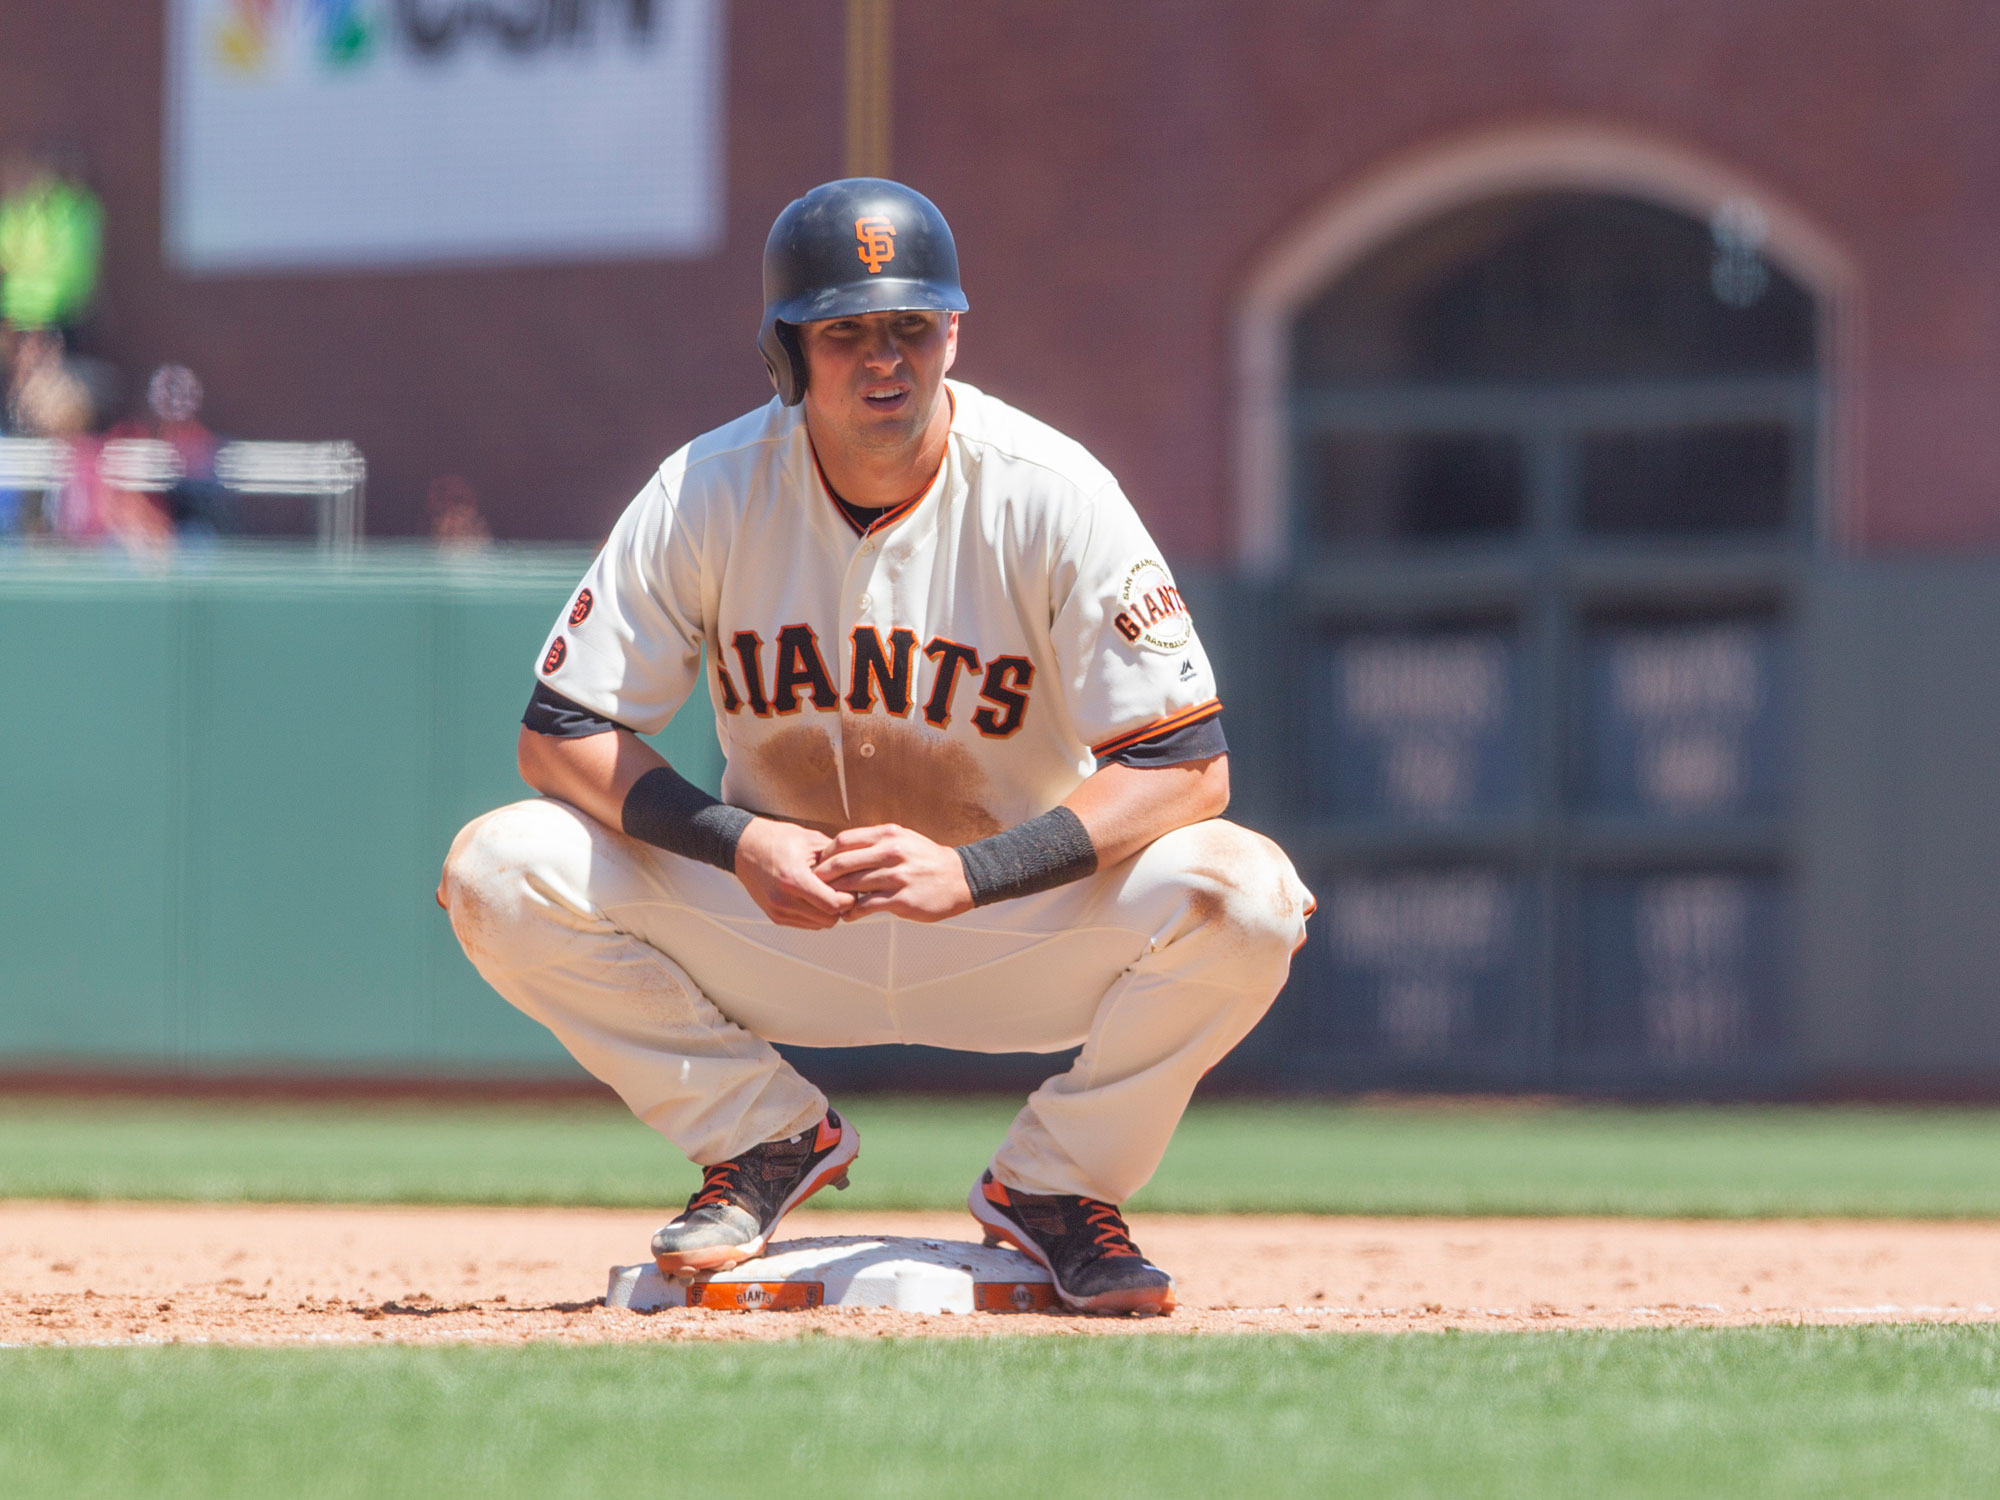 Joe Panik, San Francisco Giants